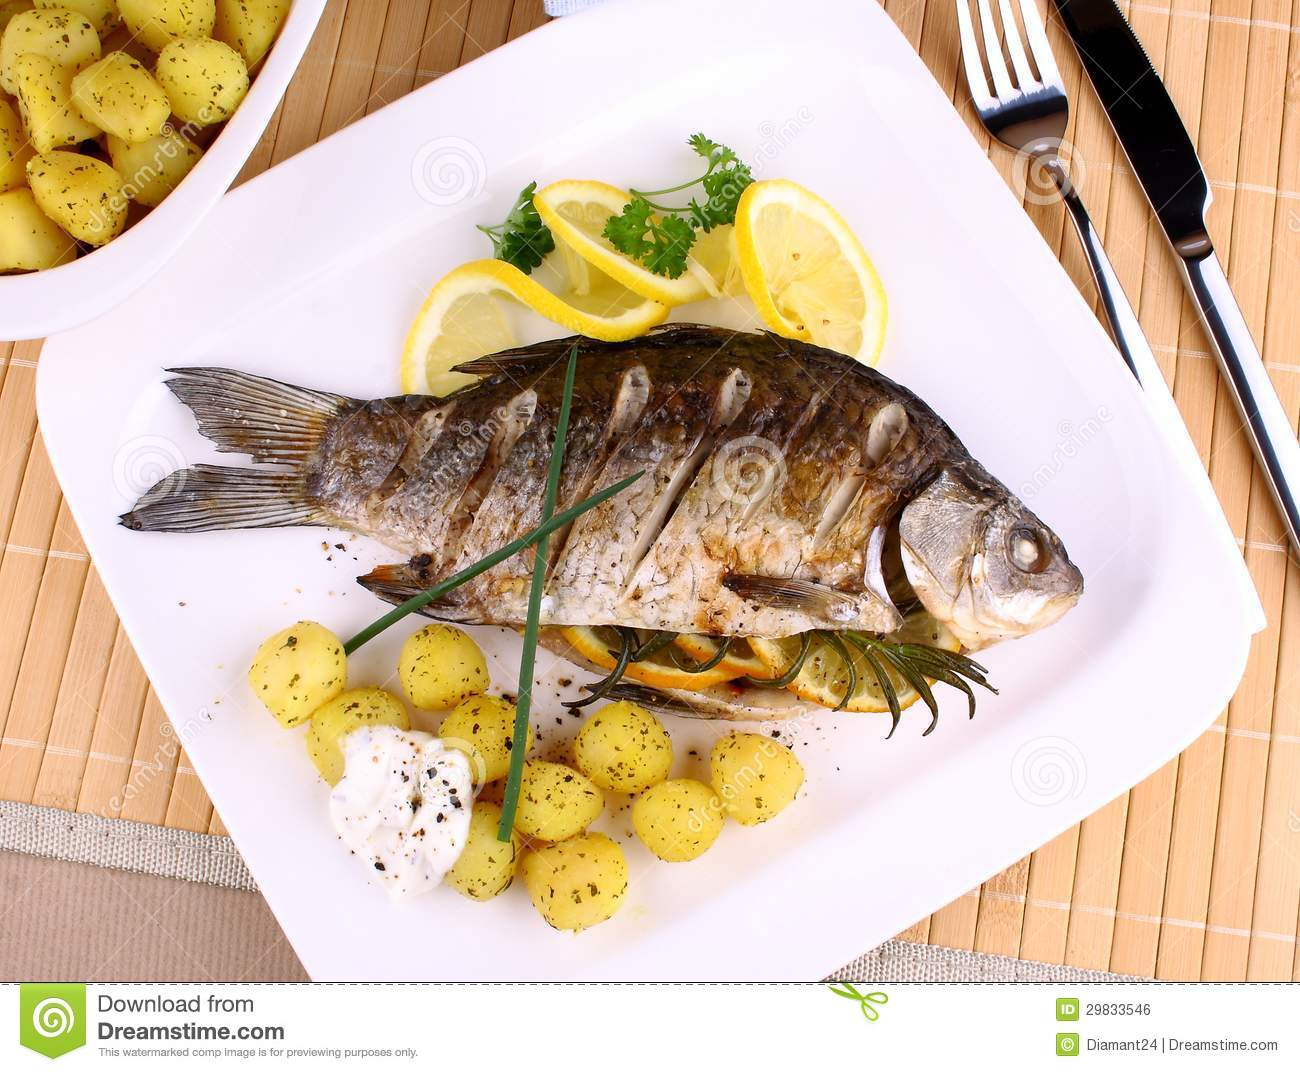 Why are some fish dishes served with lemon? How did this ...